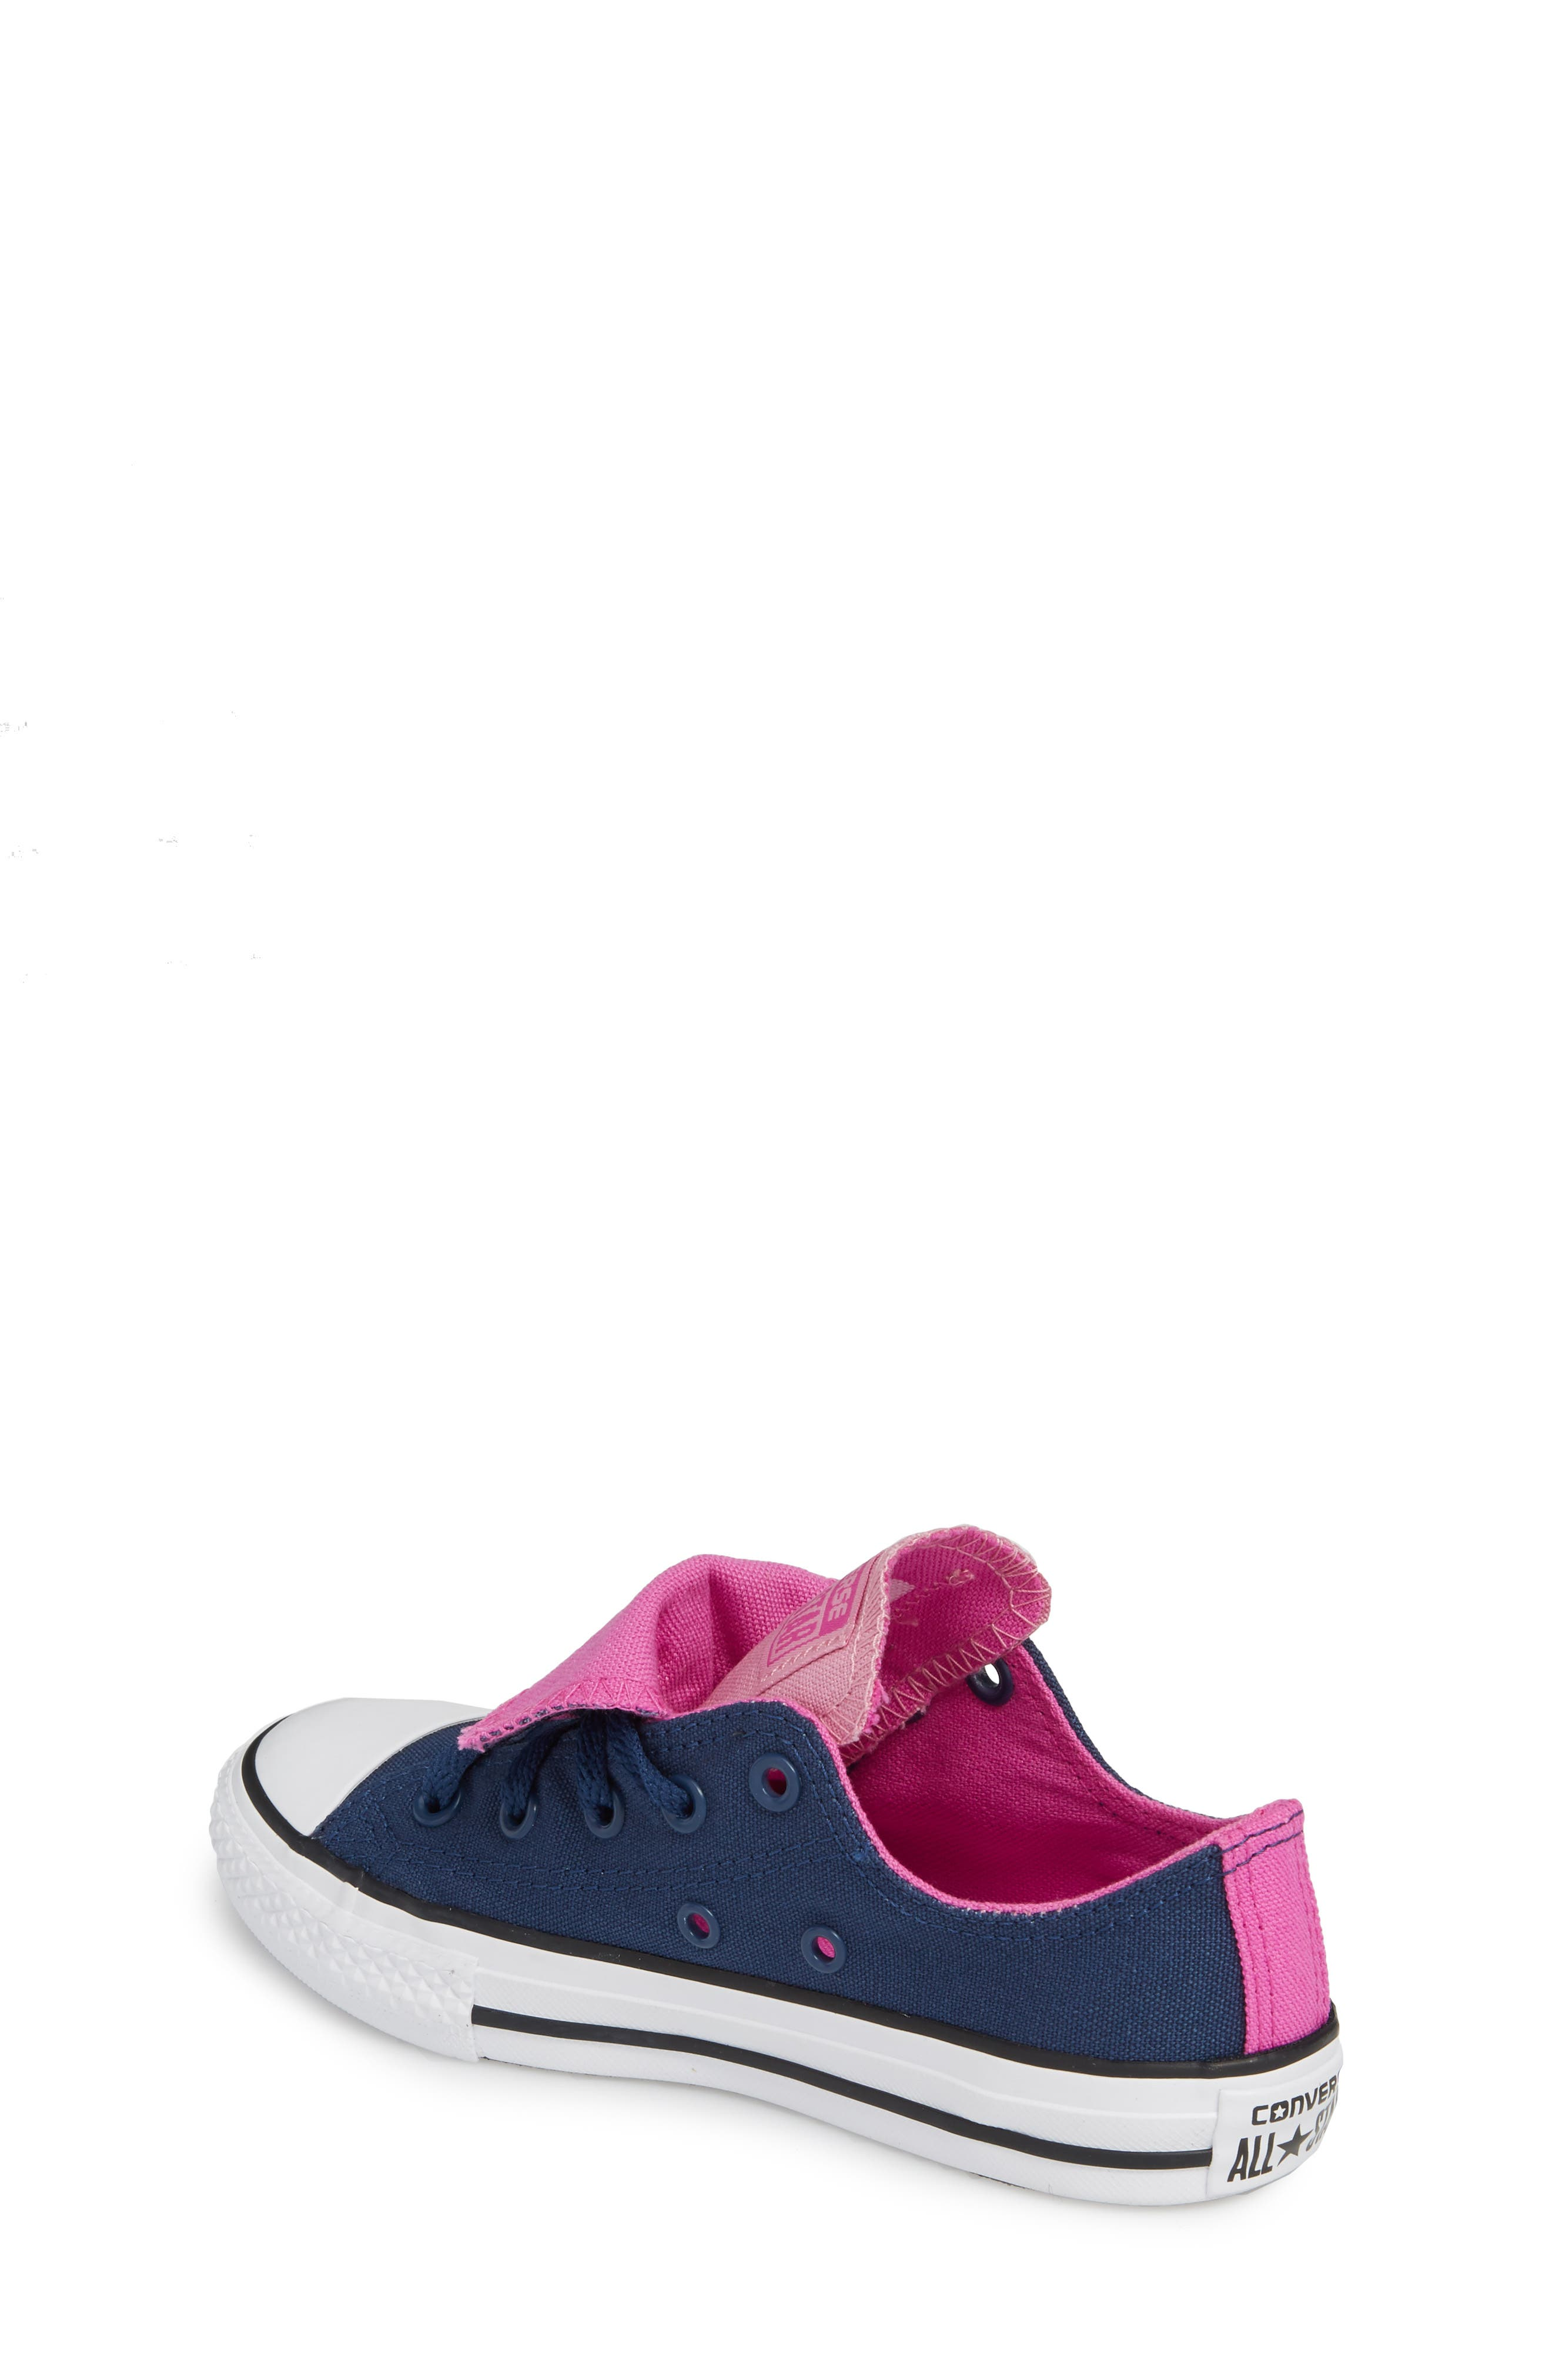 All Star<sup>®</sup> Double Tongue Sneaker,                             Alternate thumbnail 2, color,                             Navy